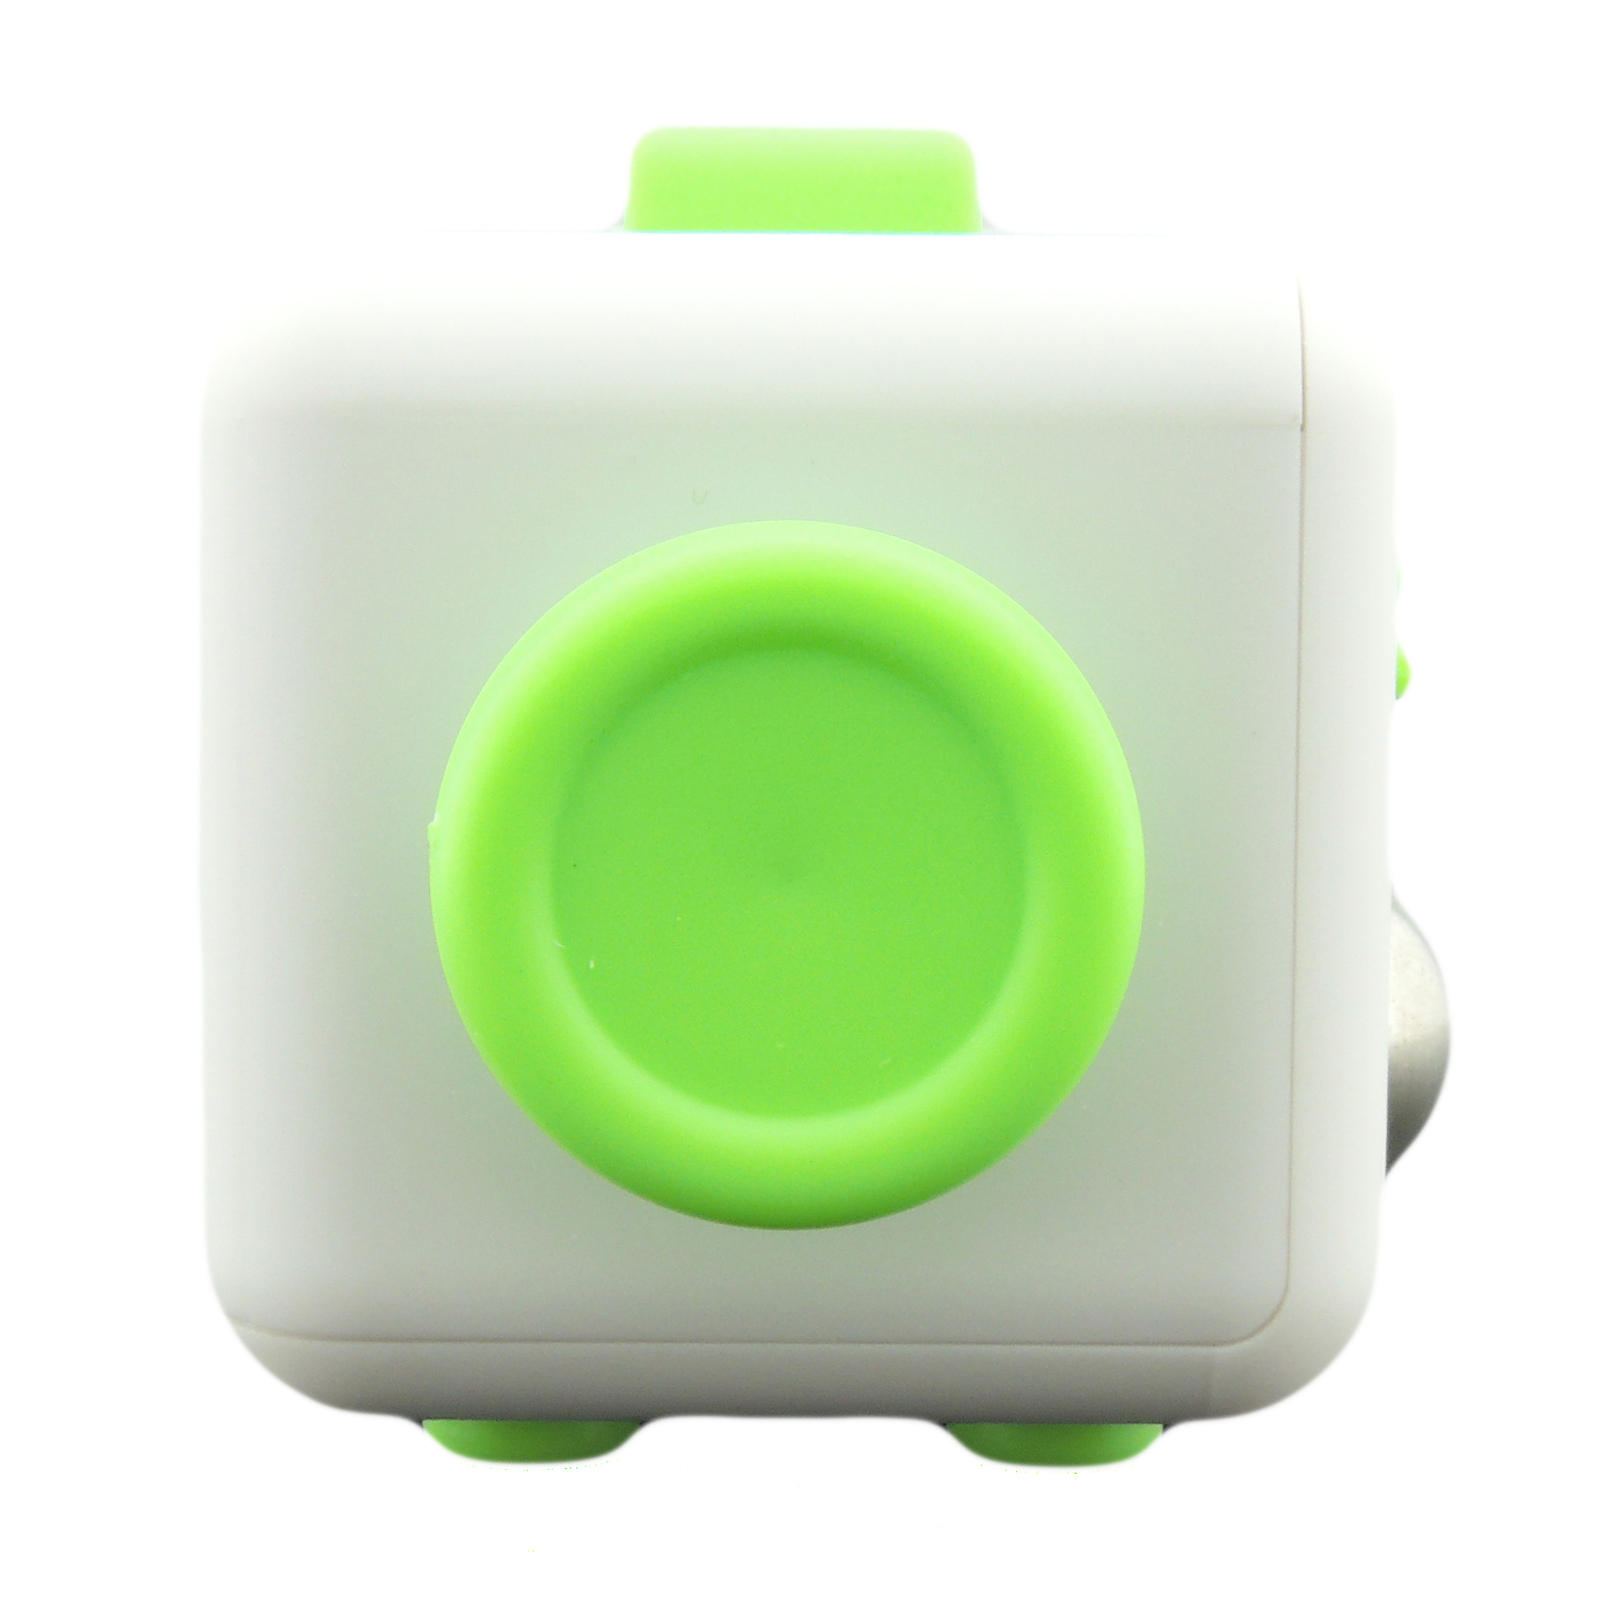 Fidget Cube Anxiety Stress Relief Adults Kids Gift Focus Attention Therapy Toy